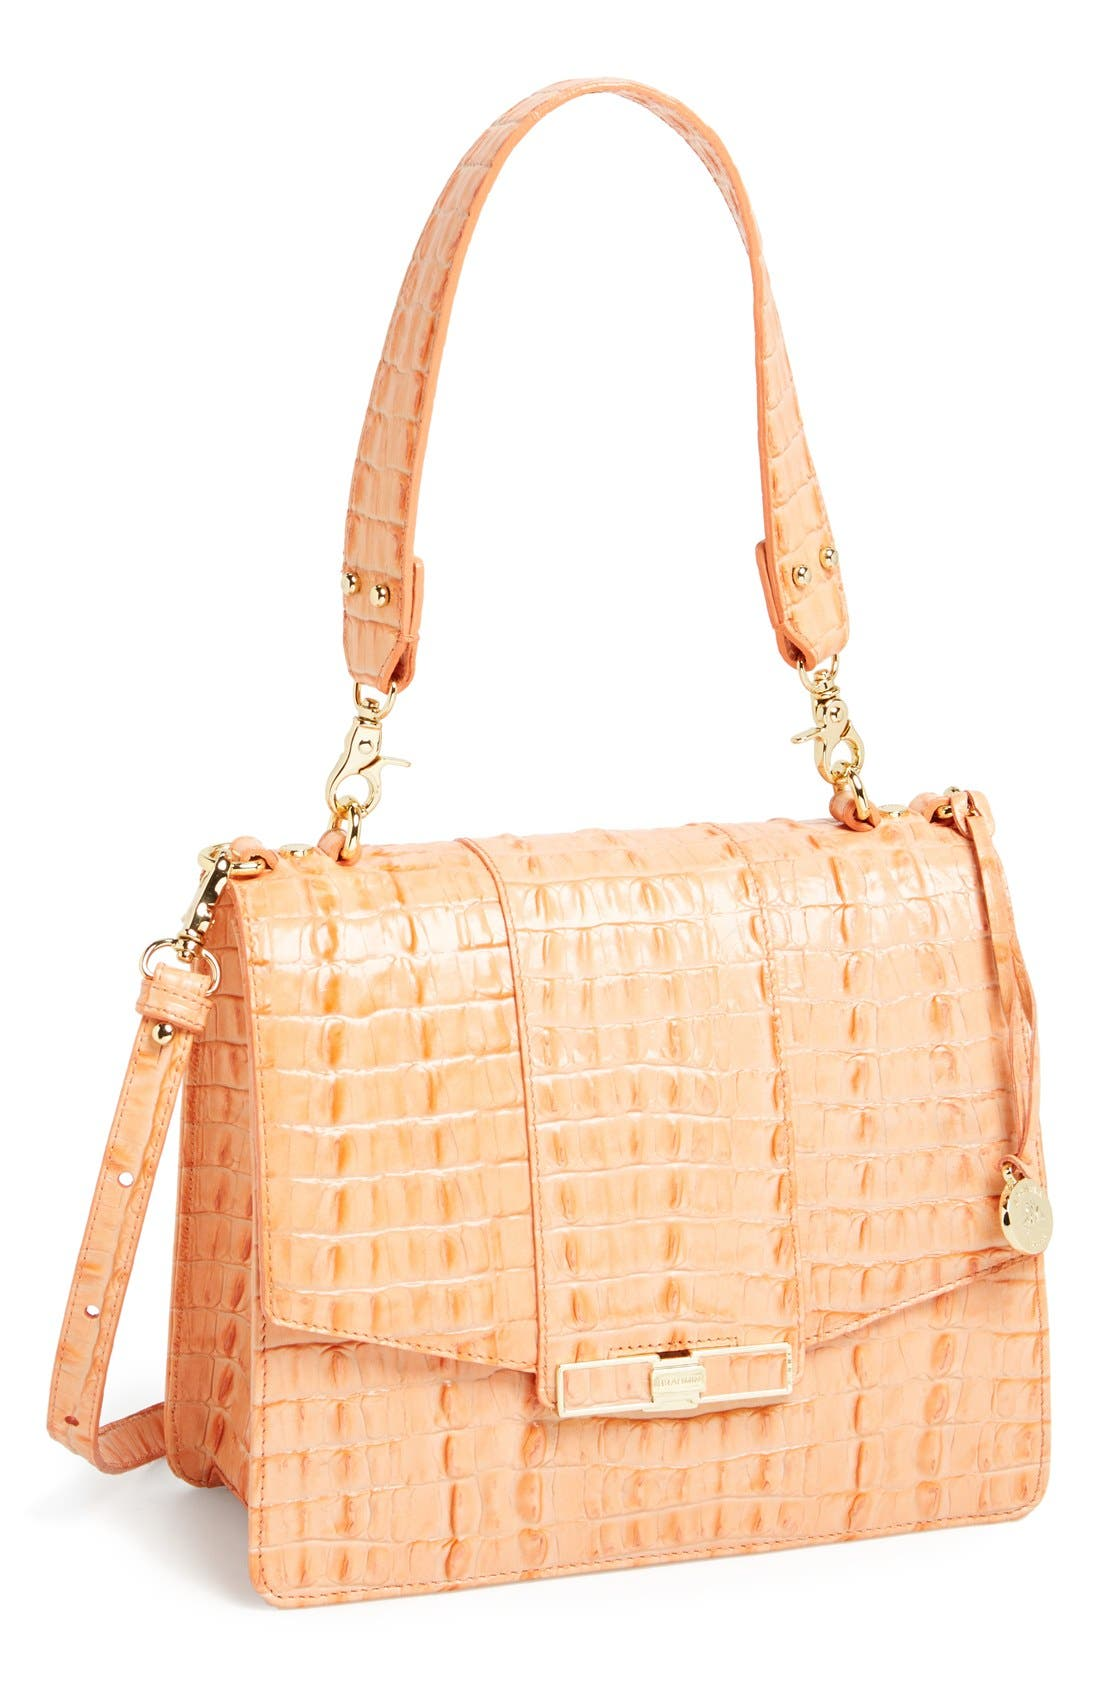 Alternate Image 1 Selected - Brahmin 'Ophelia' Croc Embossed Leather Shoulder Bag